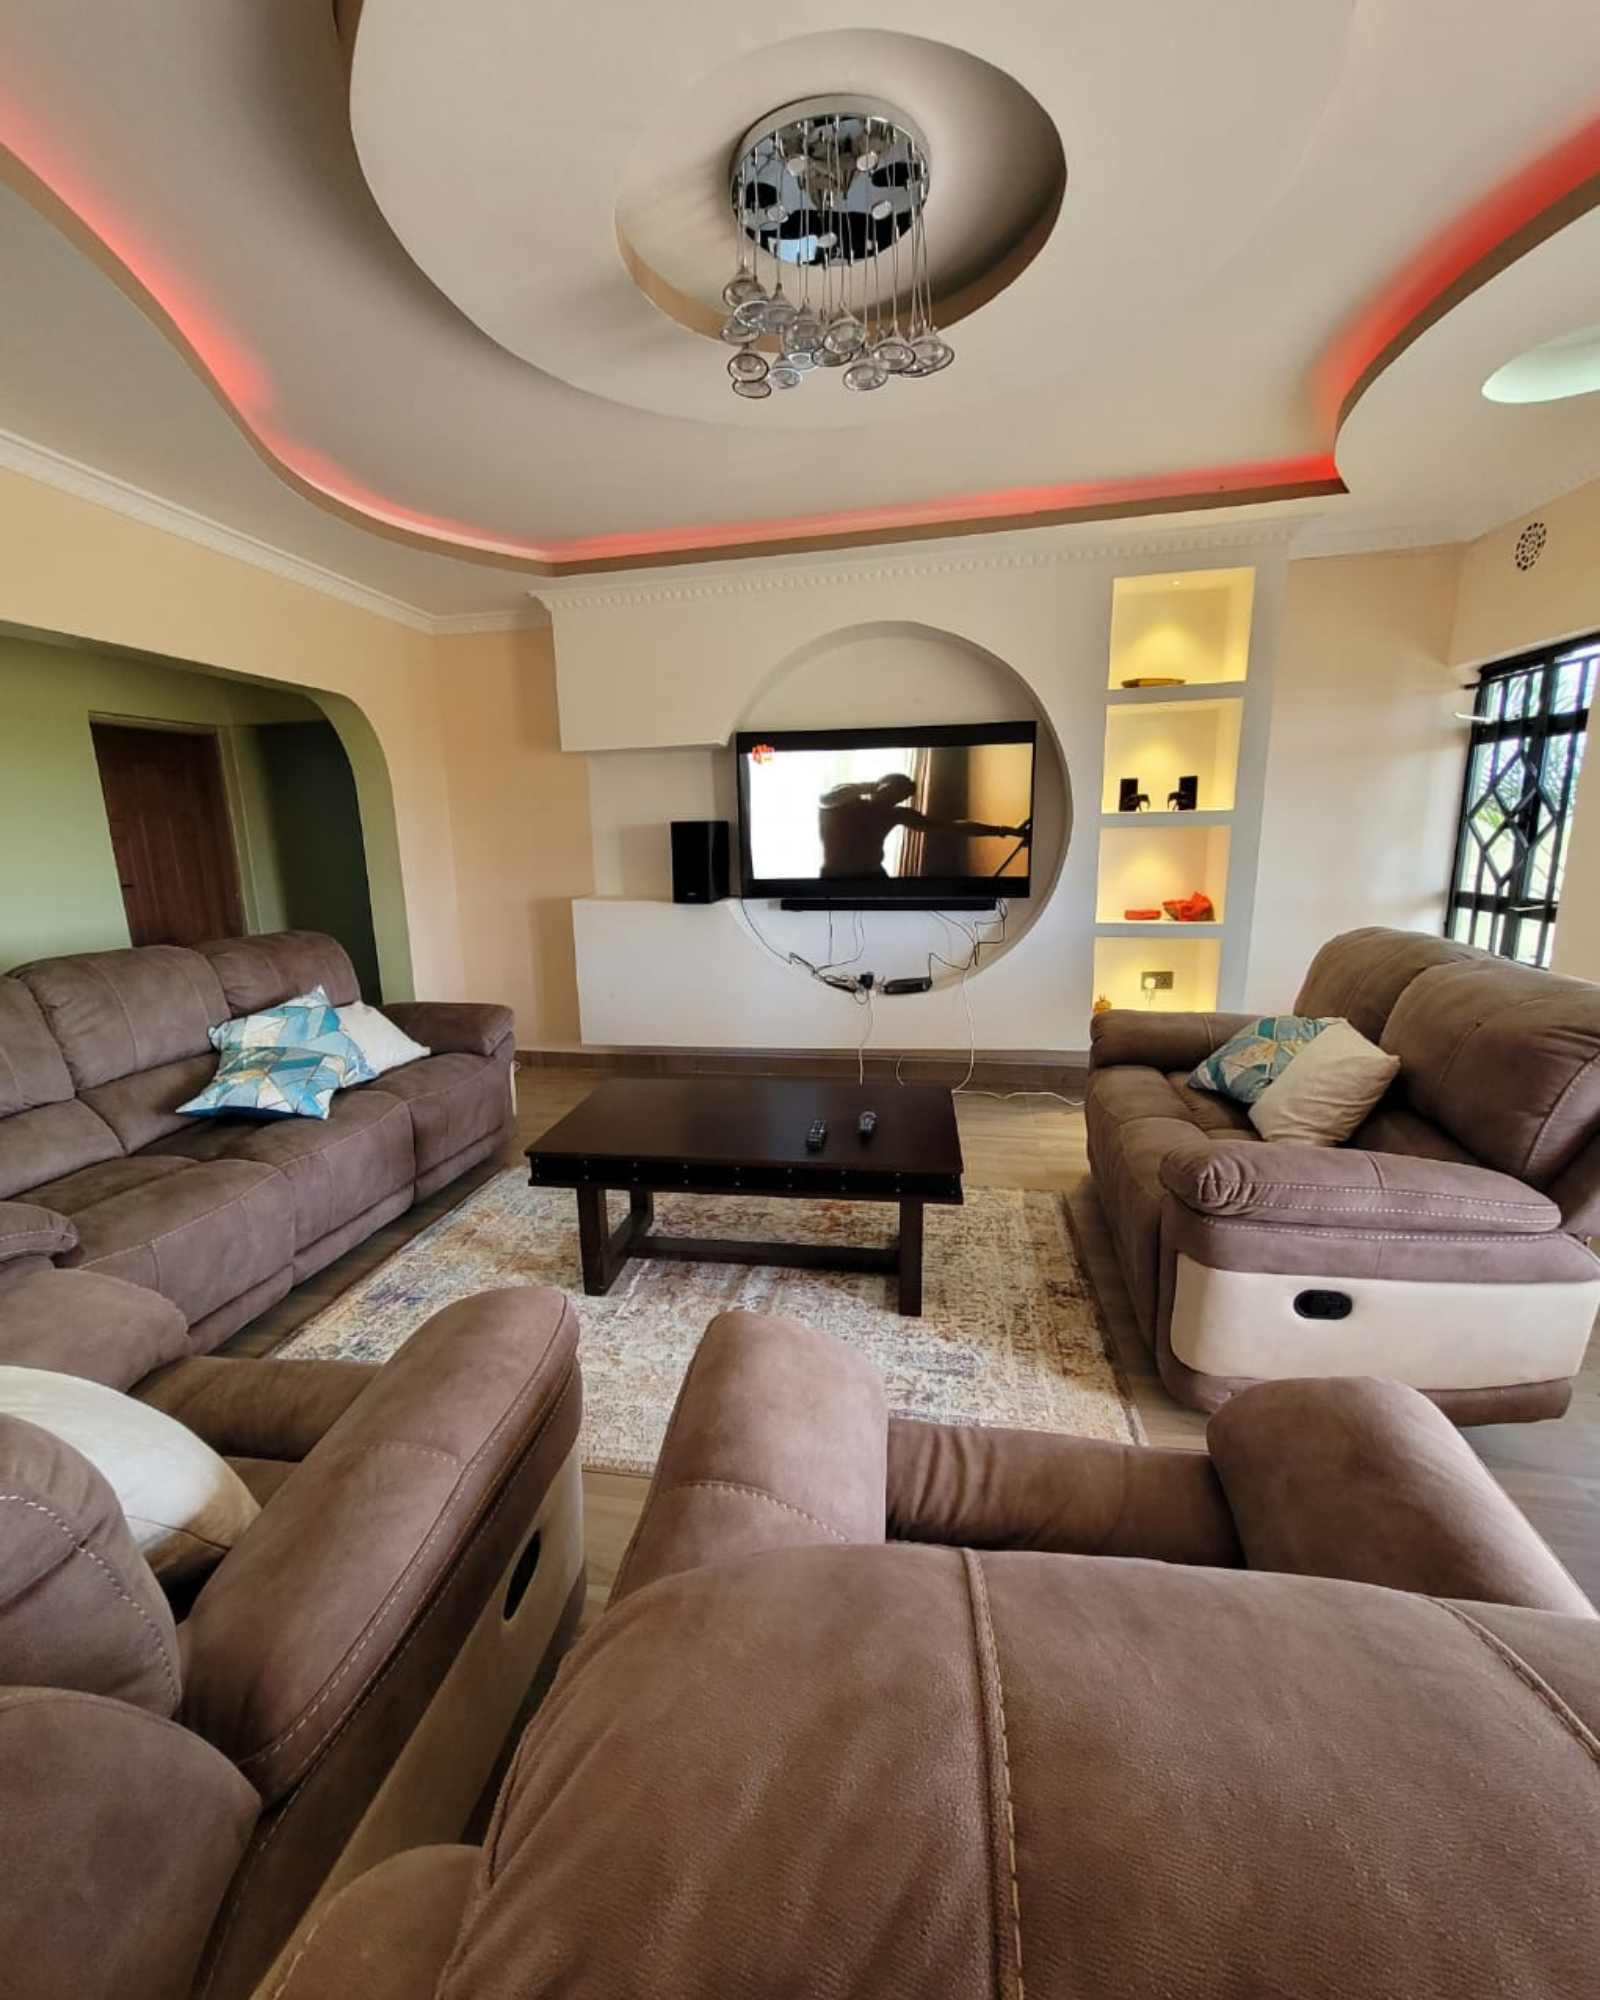 Living Room at Kokoo's Guest House